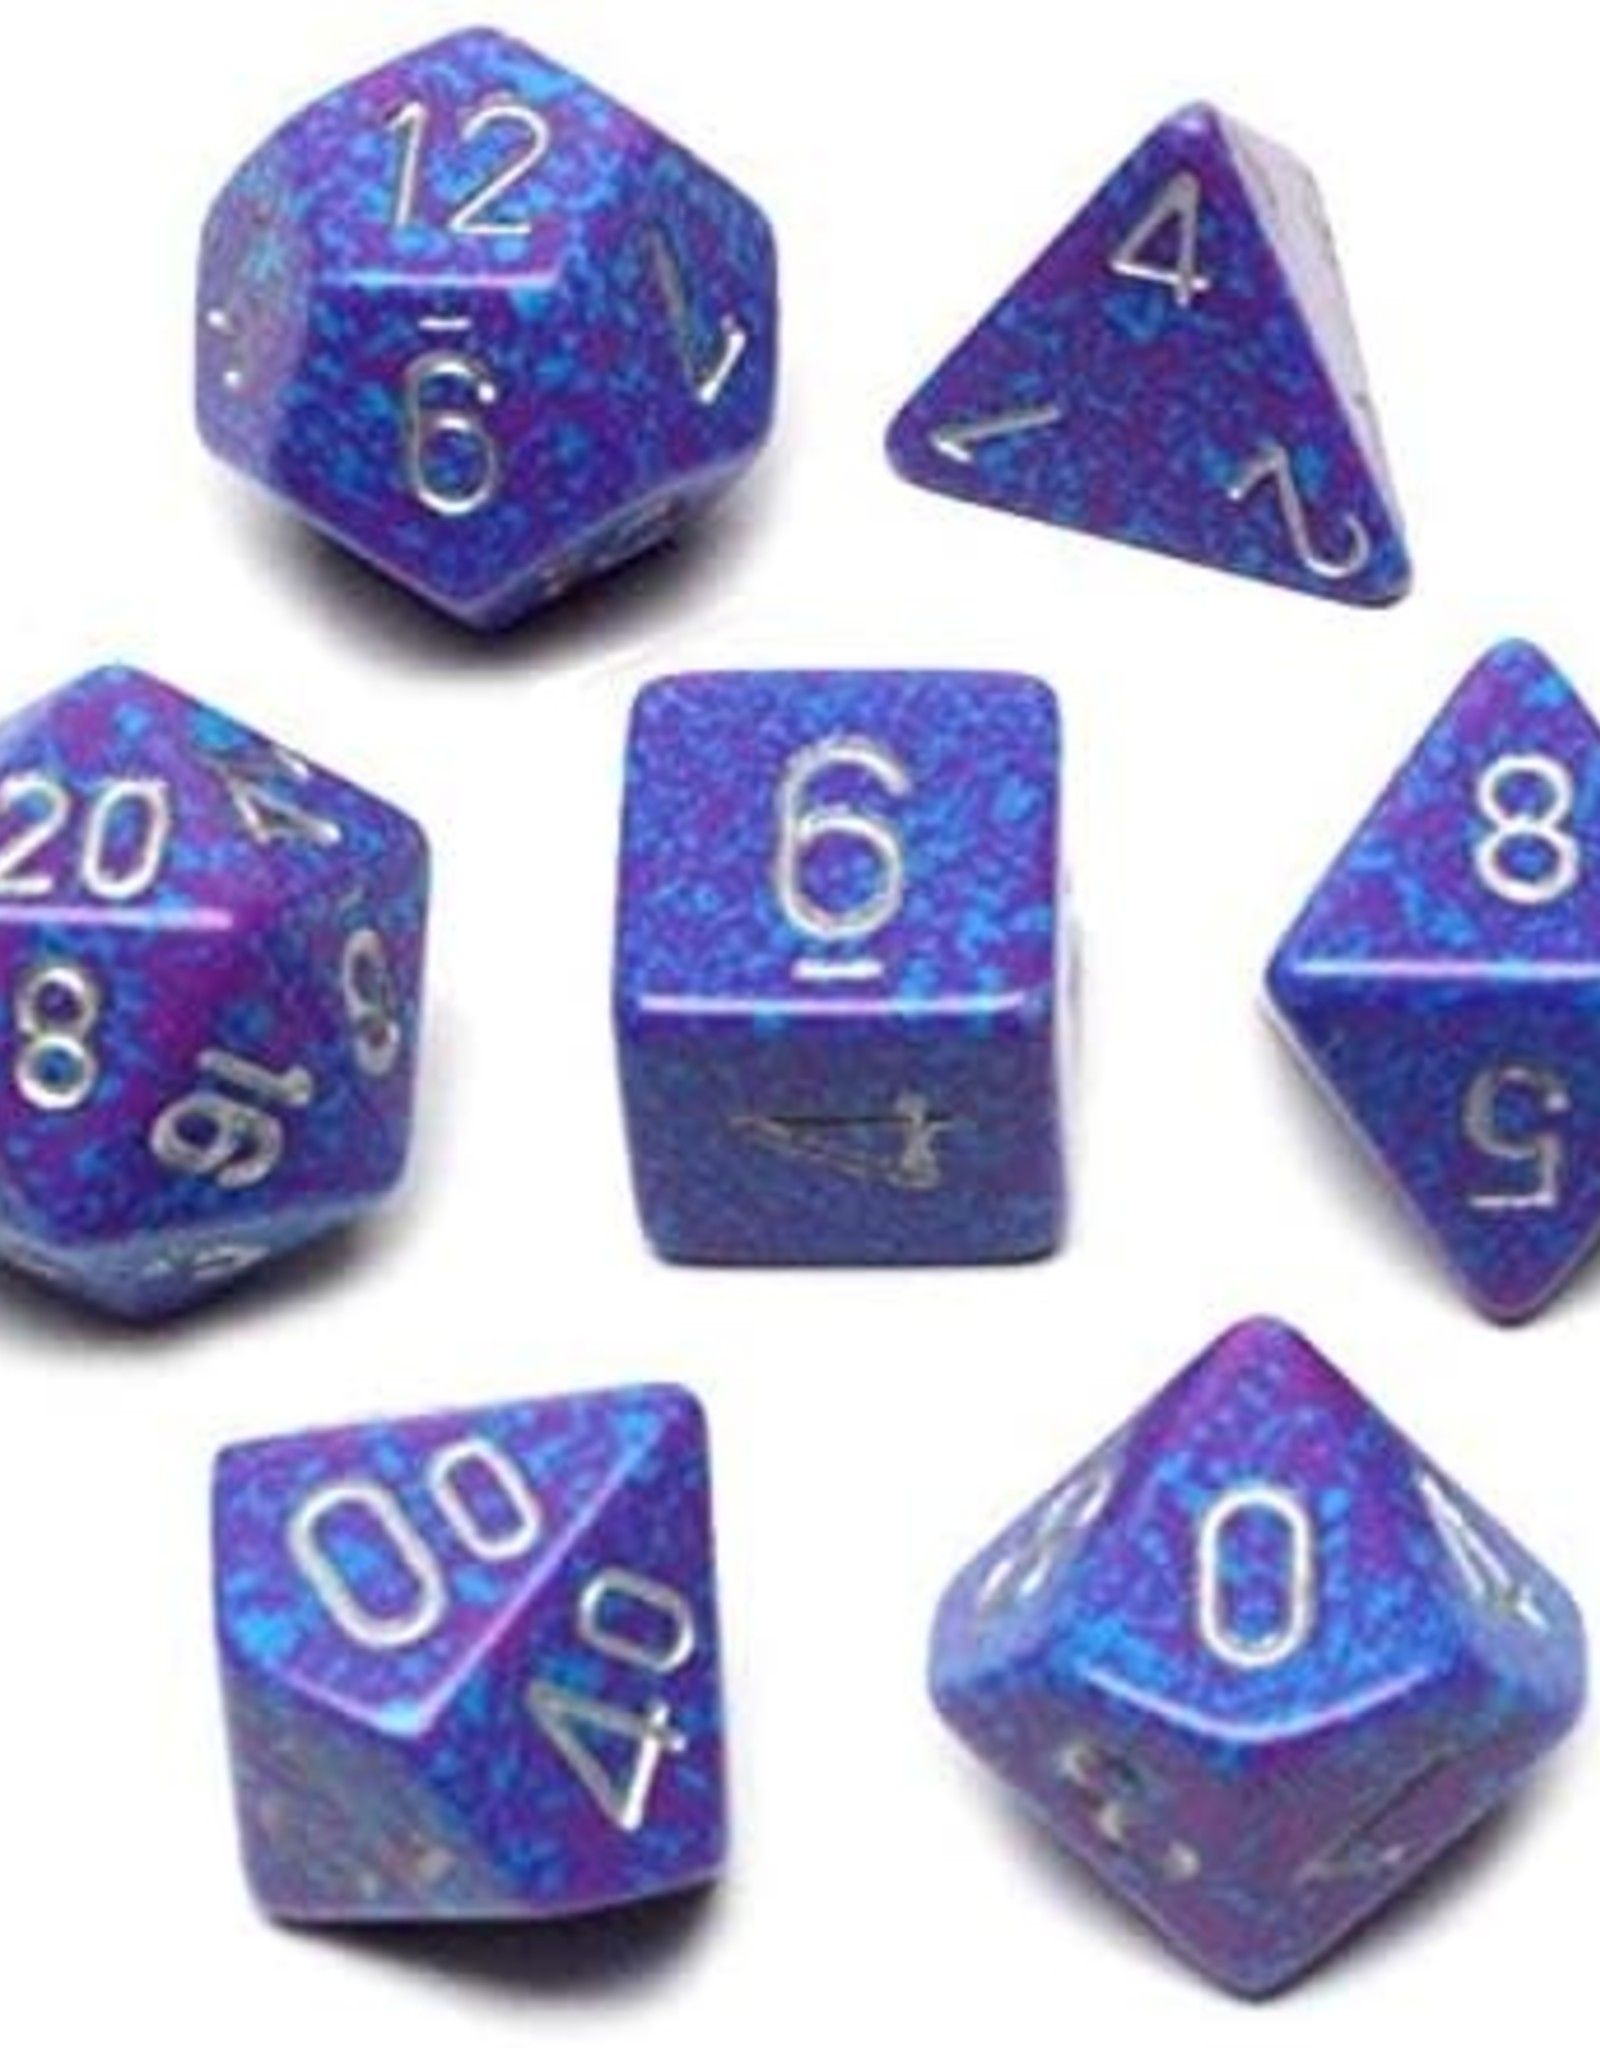 Chessex Chessex CHX25347 Dice-Speckled Silver Tetra Set